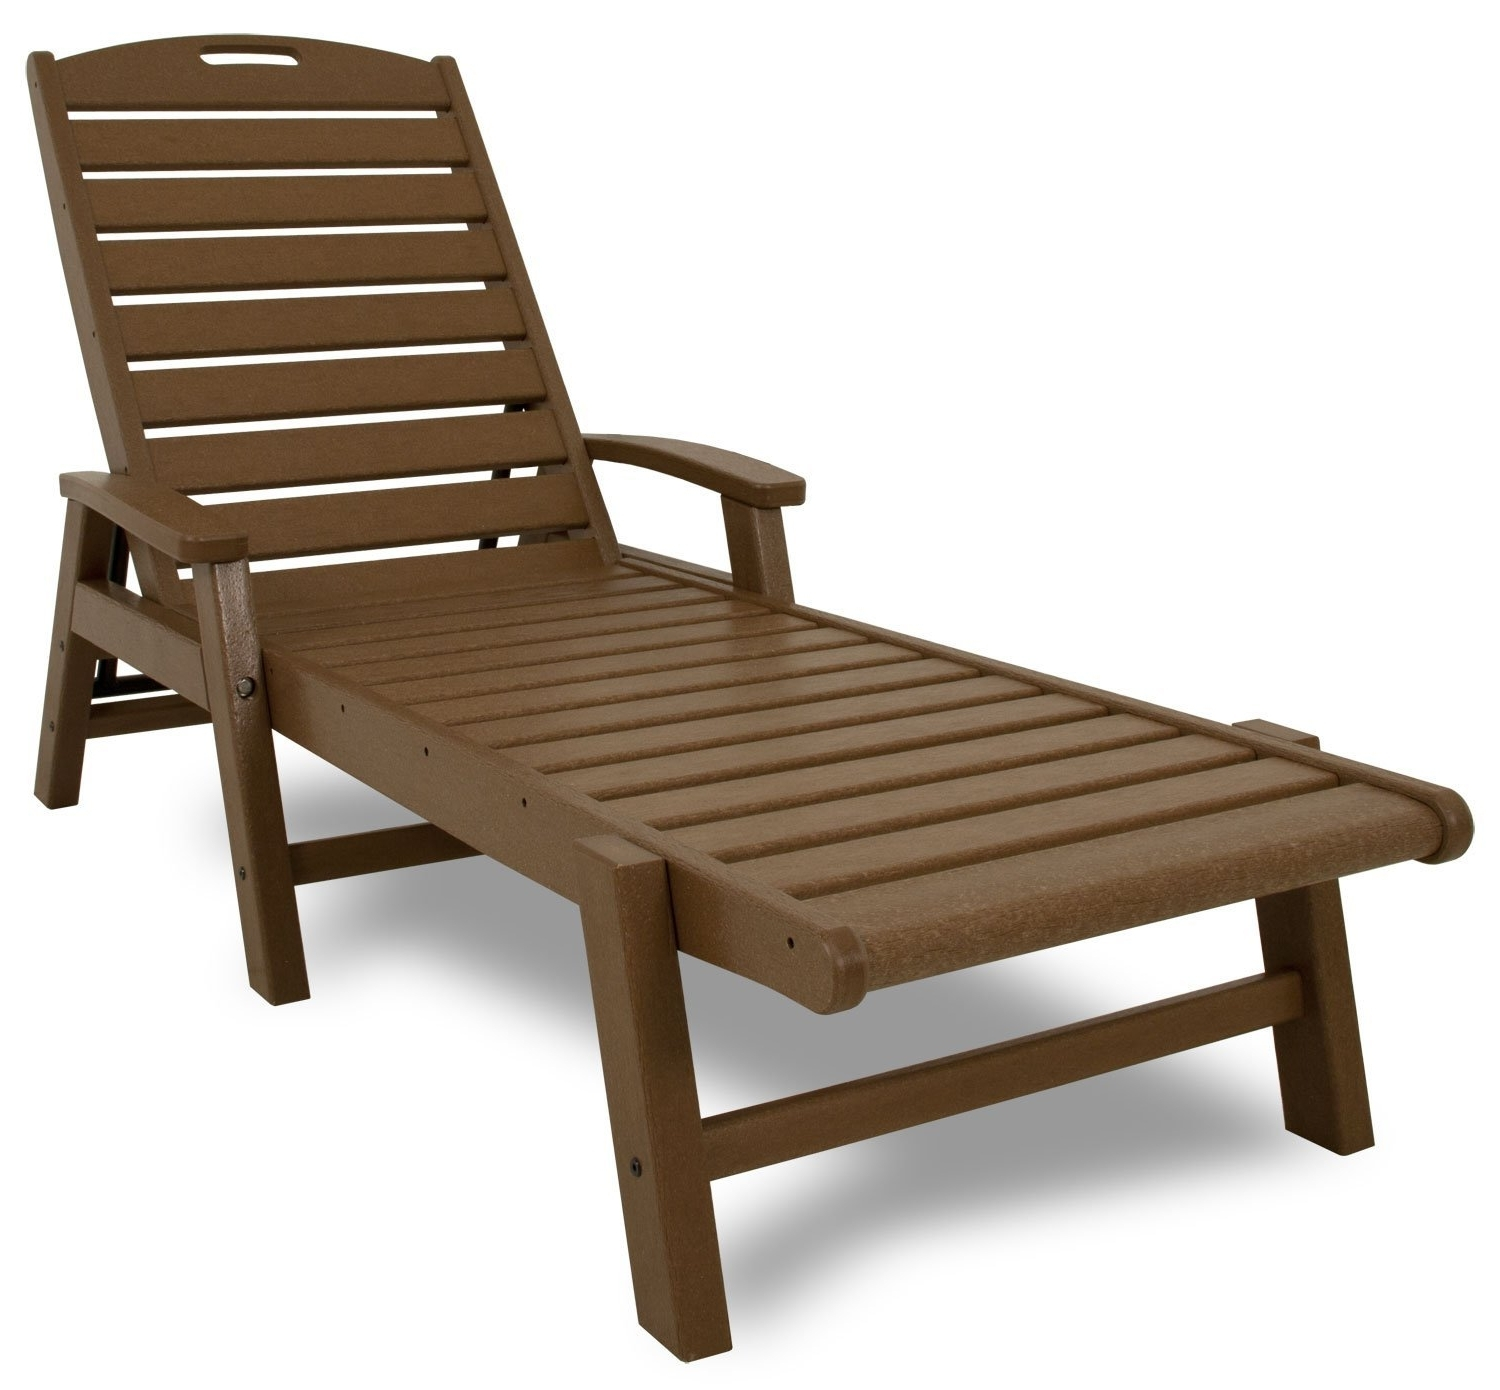 Amazon : Trex Outdoor Furniture Yacht Club Stackable Chaise Throughout Latest Chaise Lounge Chairs With Arms (View 3 of 15)